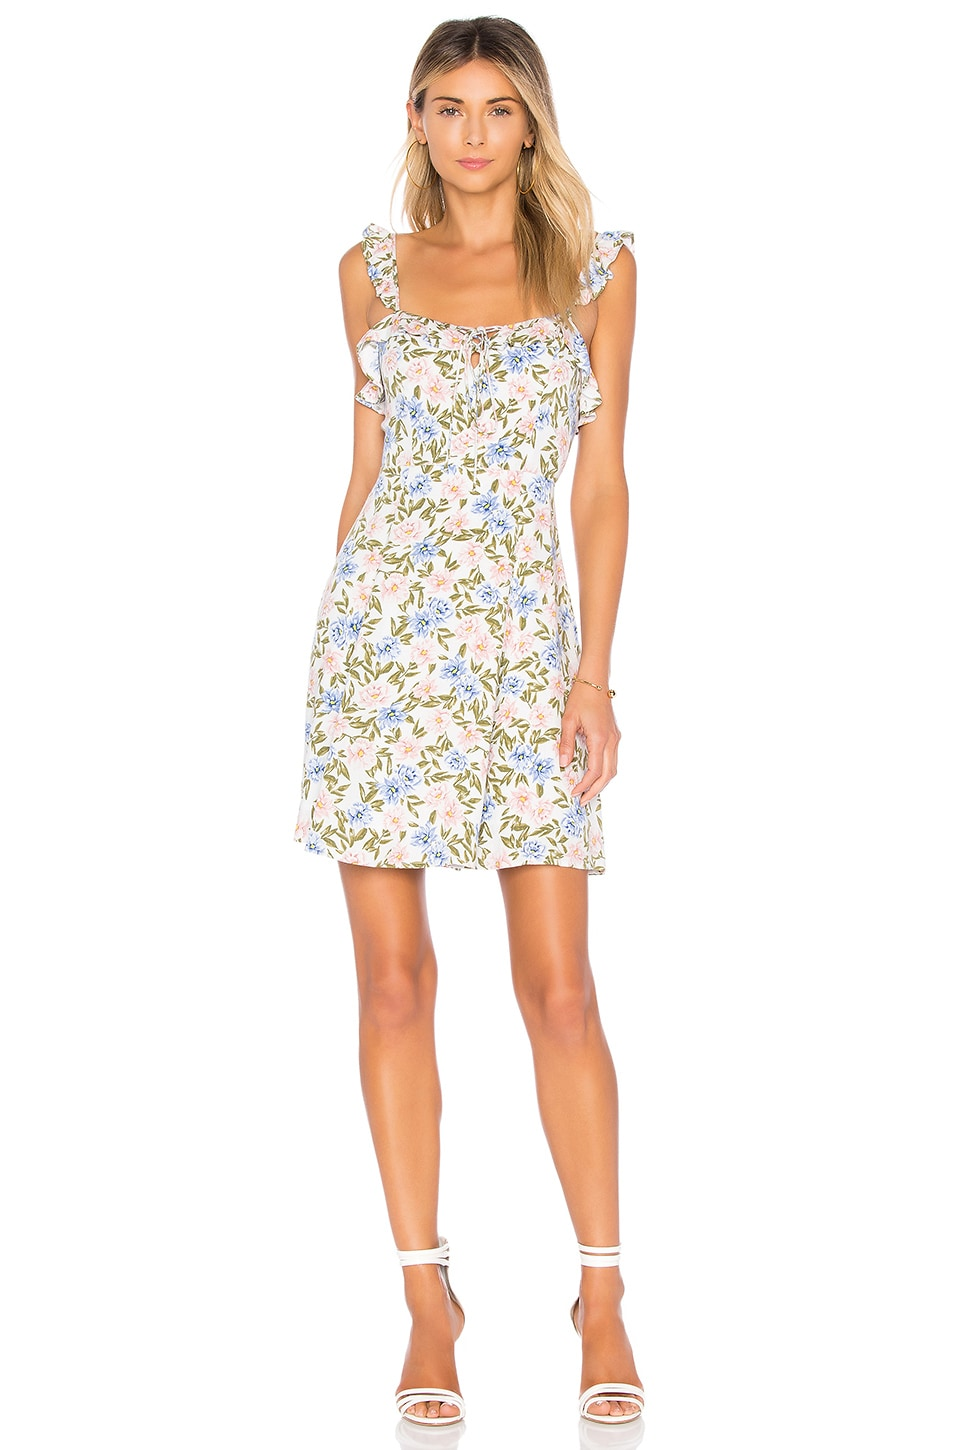 ASTR the Label Hannah Dress in Blue Pink Floral